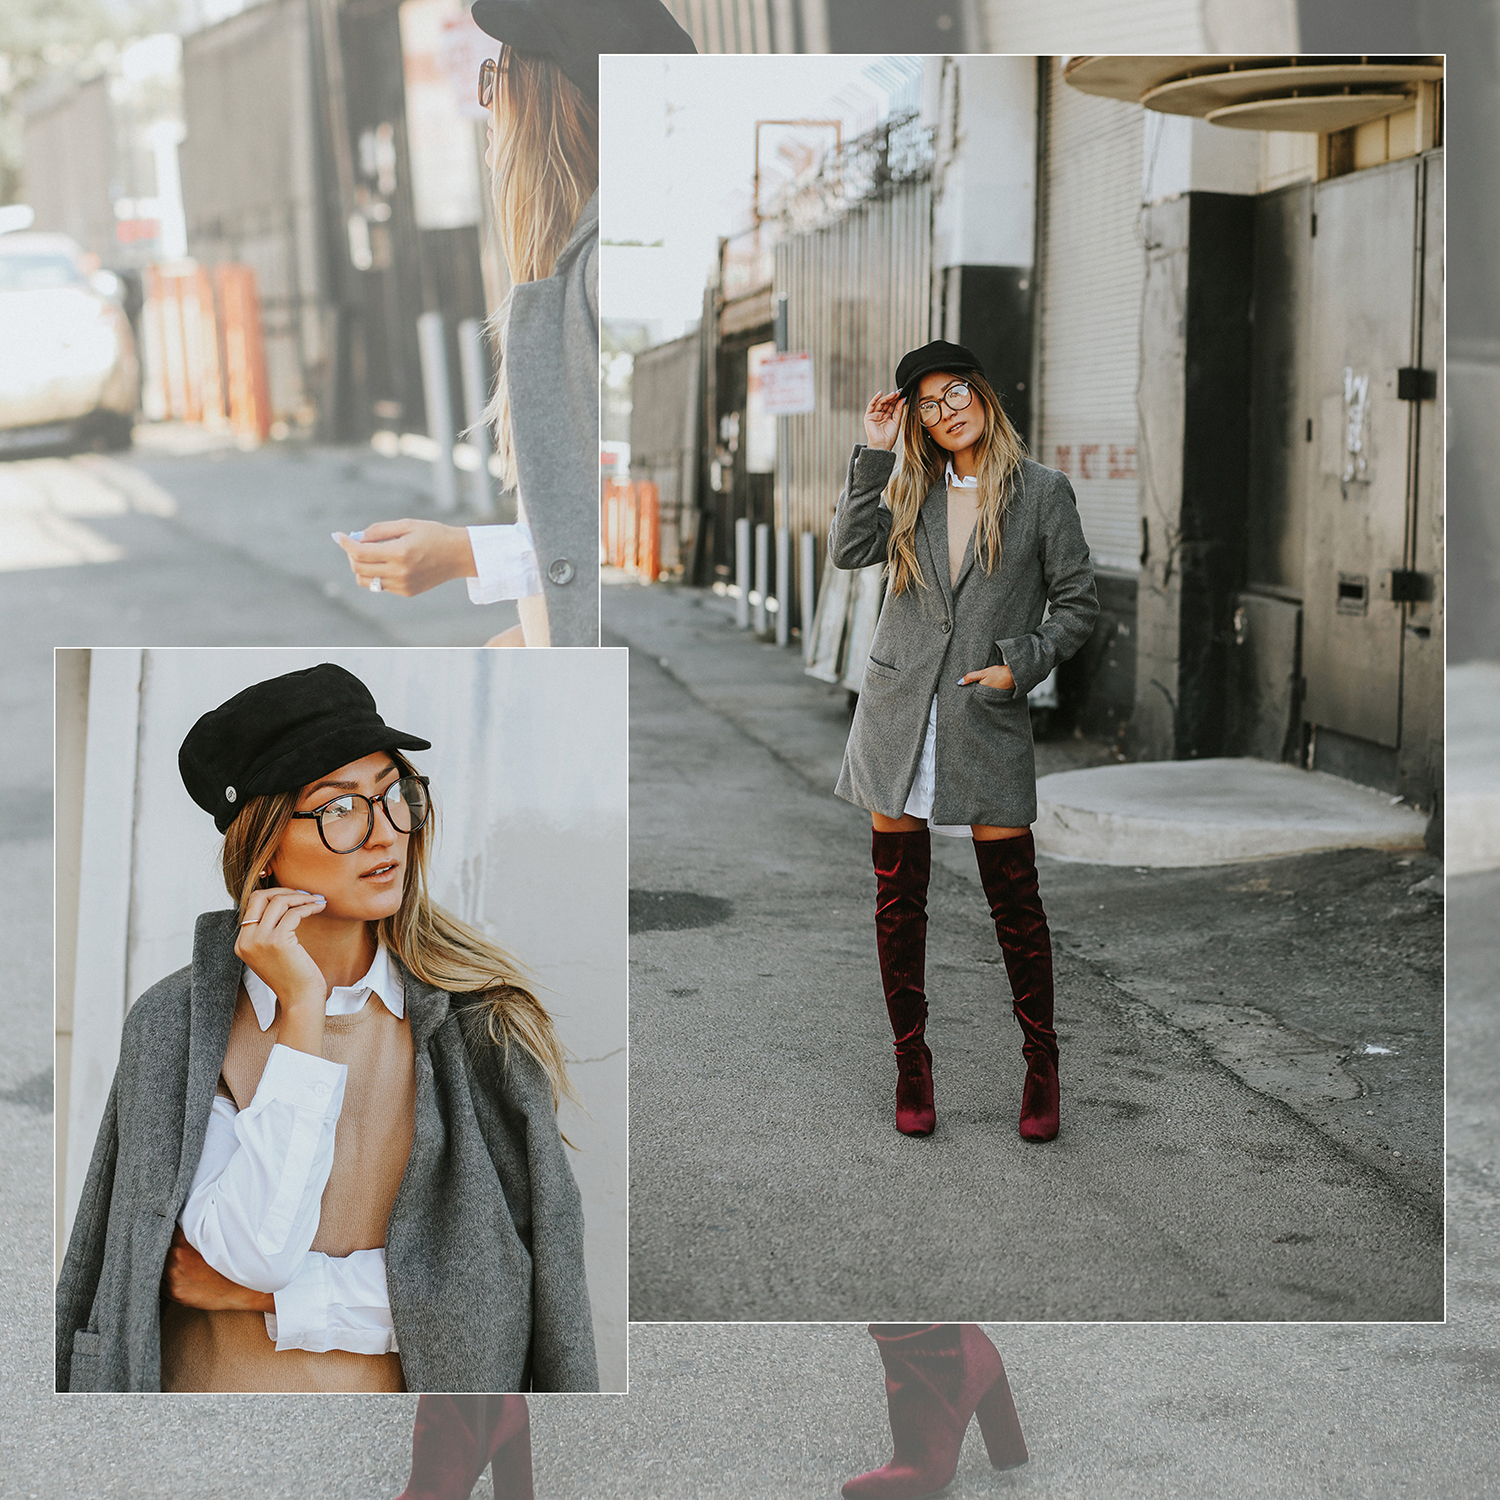 The Only Coat You Need For Fall, fall coats, coats, fall, ootd, outfit, blogger style, street style, melrodstyle, latina blogger, mexican blogger, hispanic blogger, la blogger, whittier blogger, aldo boots, layers, fall layers,